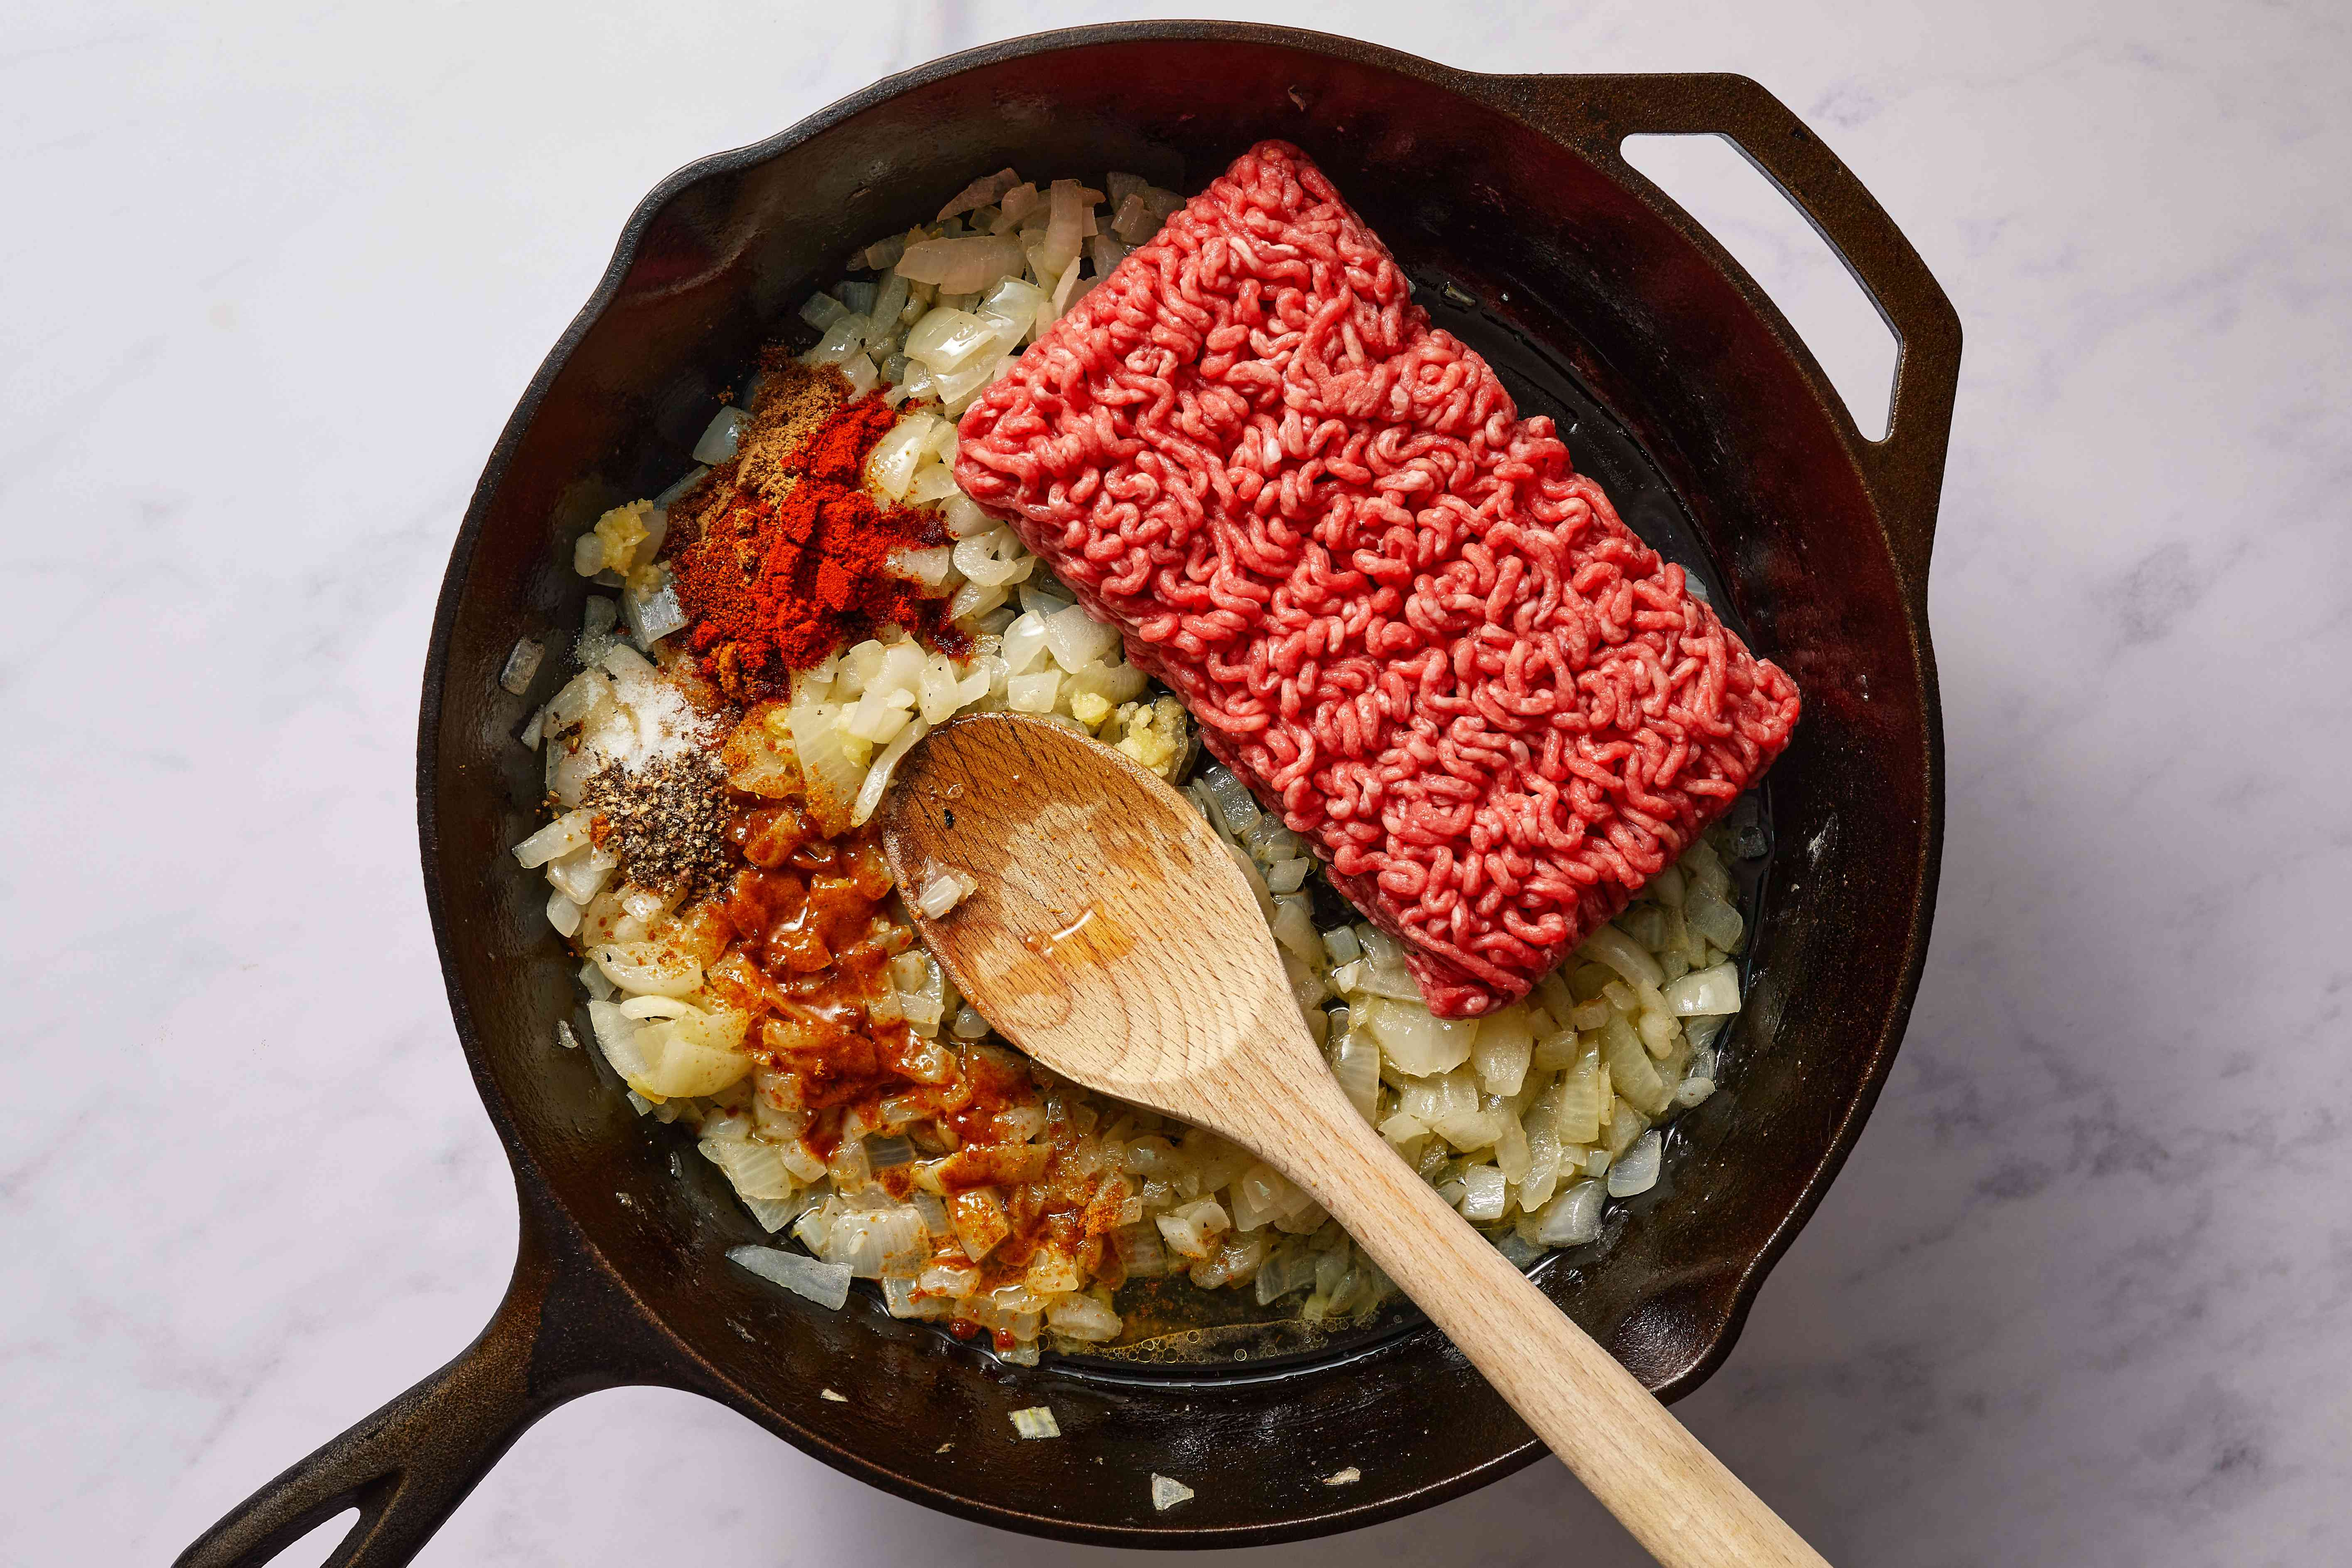 ground meat and spices added to the onions in the skillet